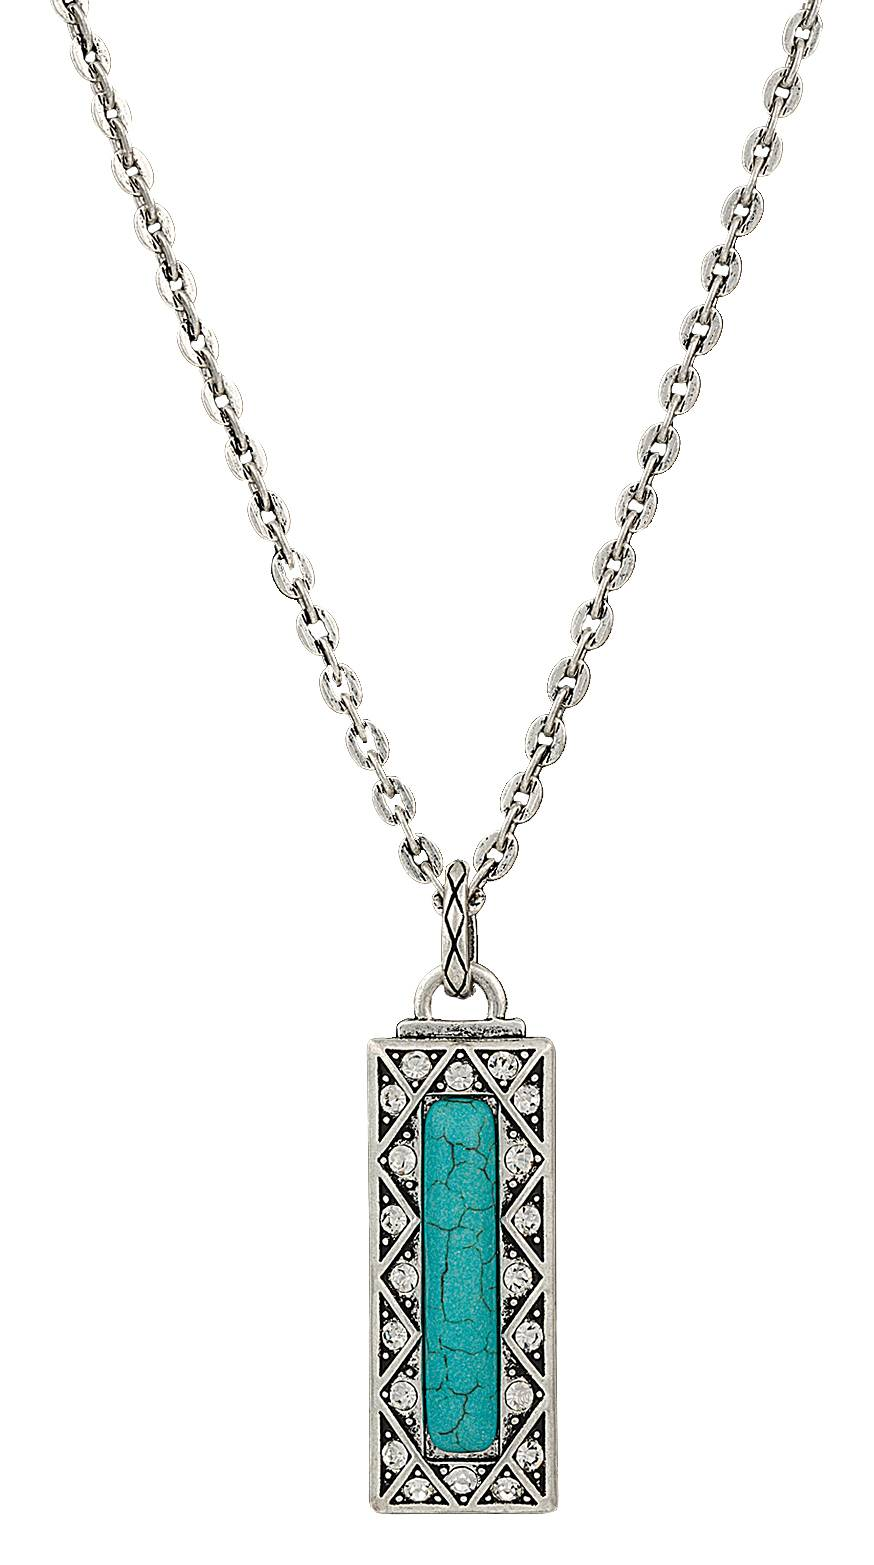 Rock 47 Vintage Kitsch Rectangular Turquoise Pendant Necklace